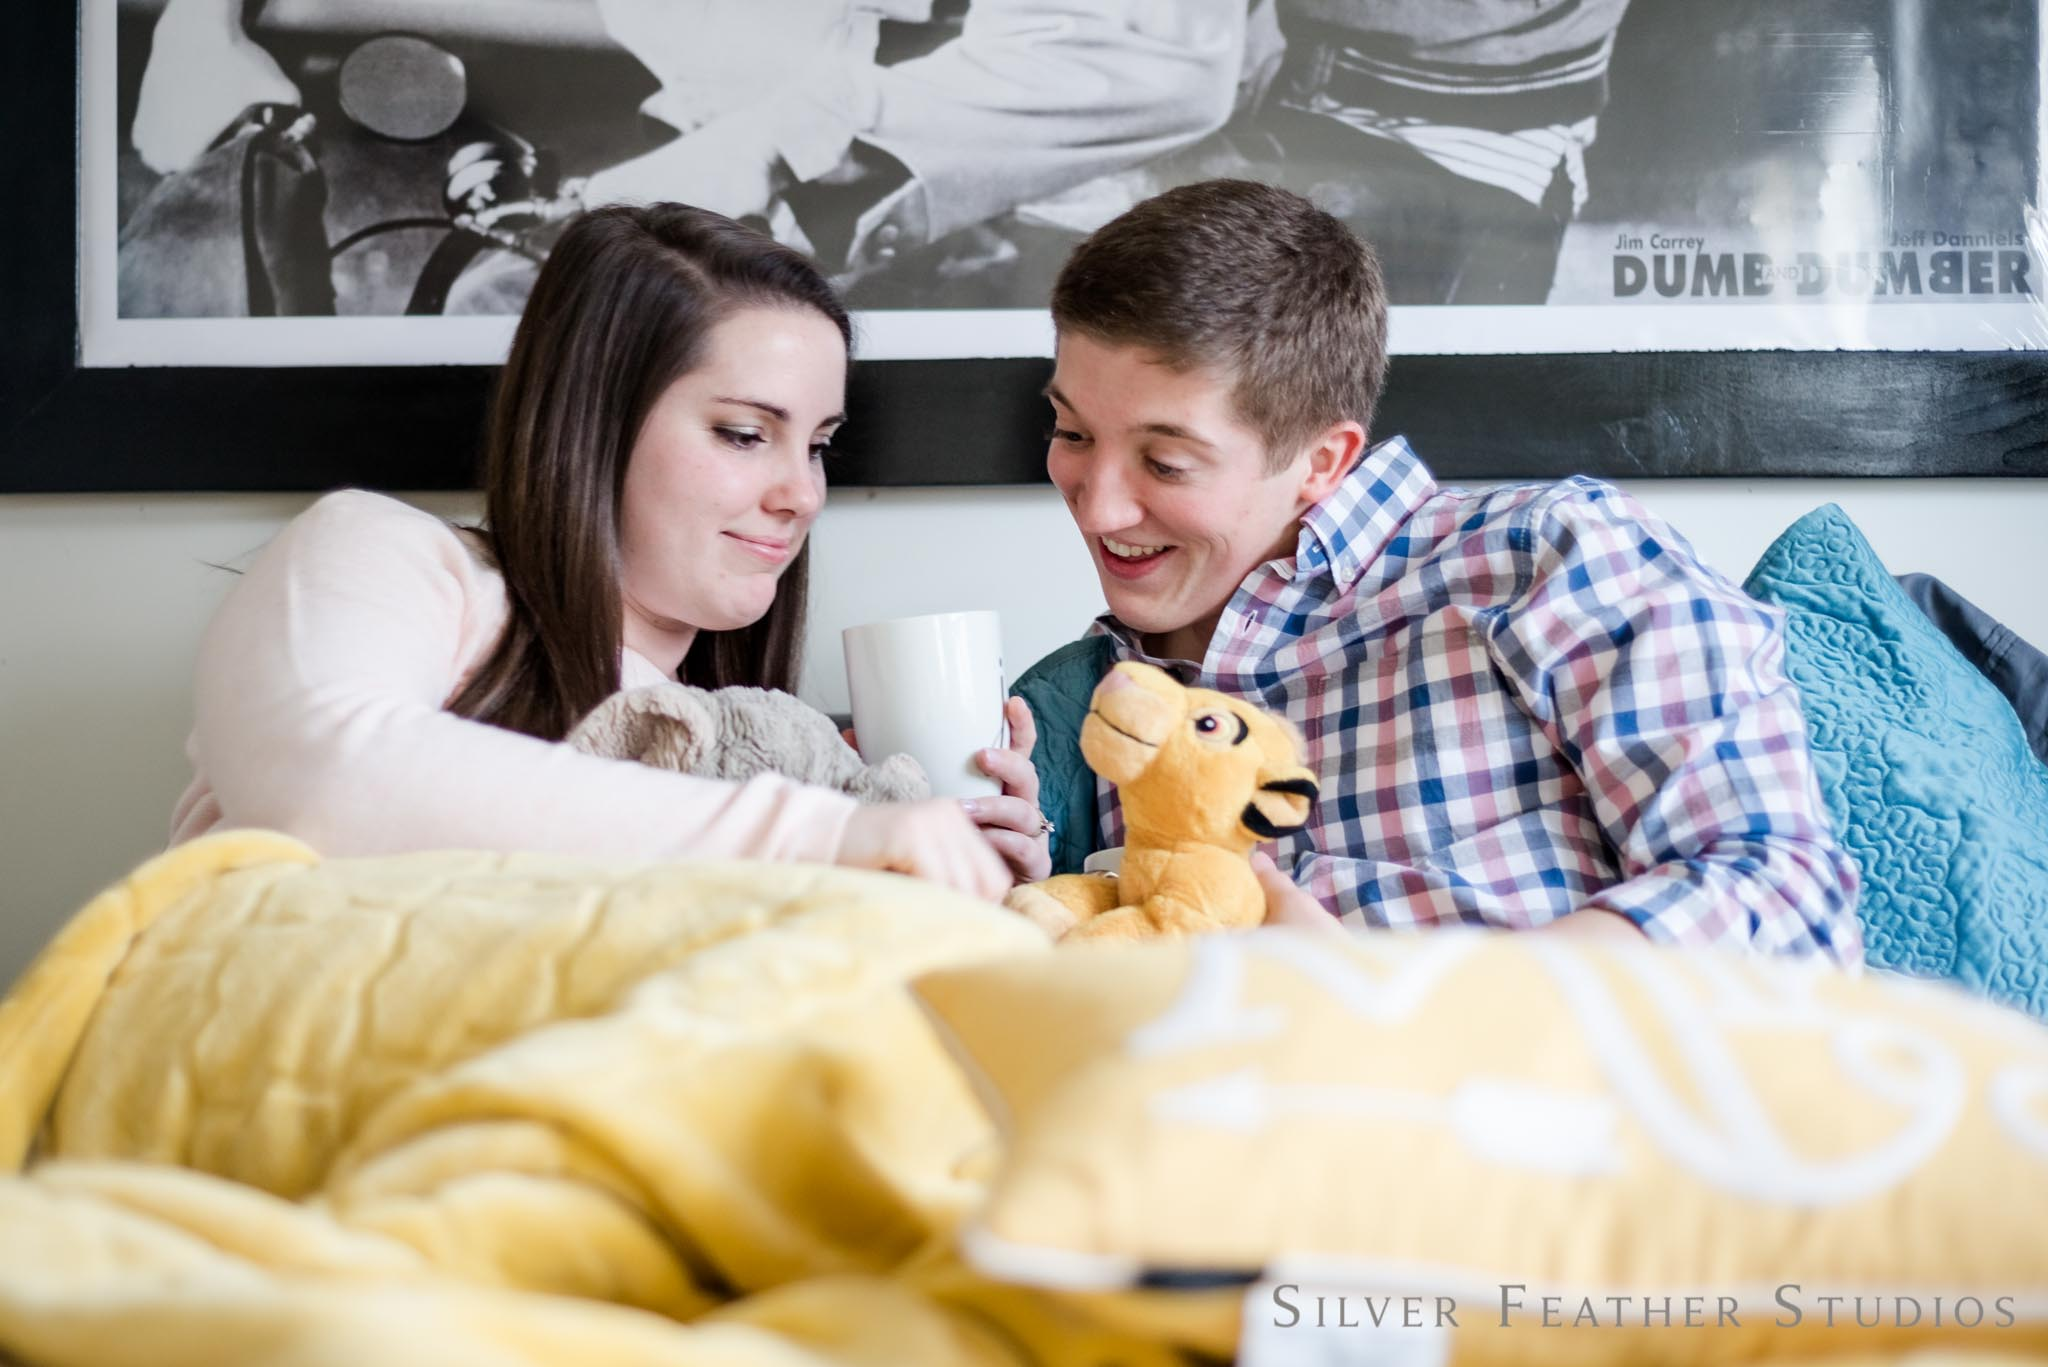 Kate and Stephen's home lifestyle engagement in Greensboro